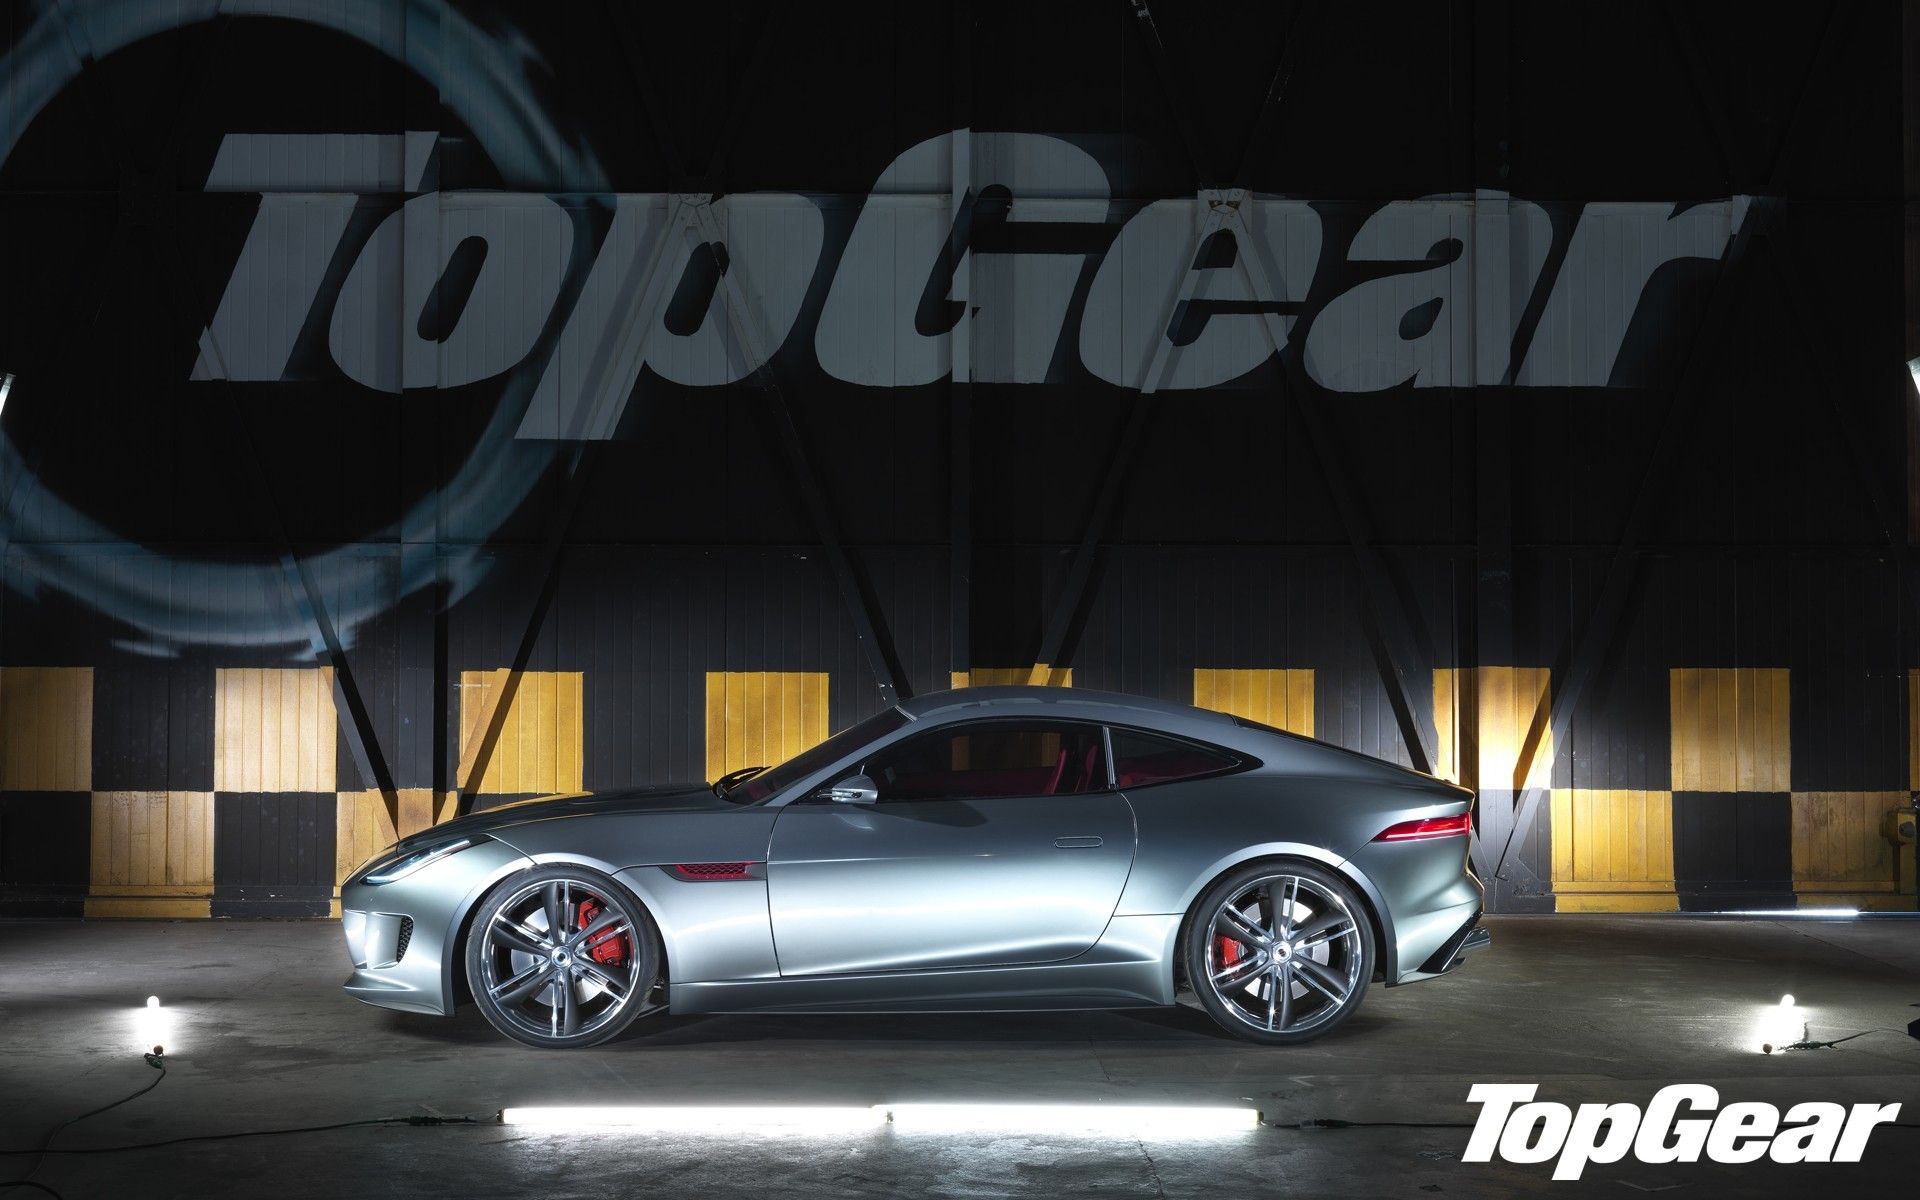 top gear jaguar Supercars HD Wallpaper